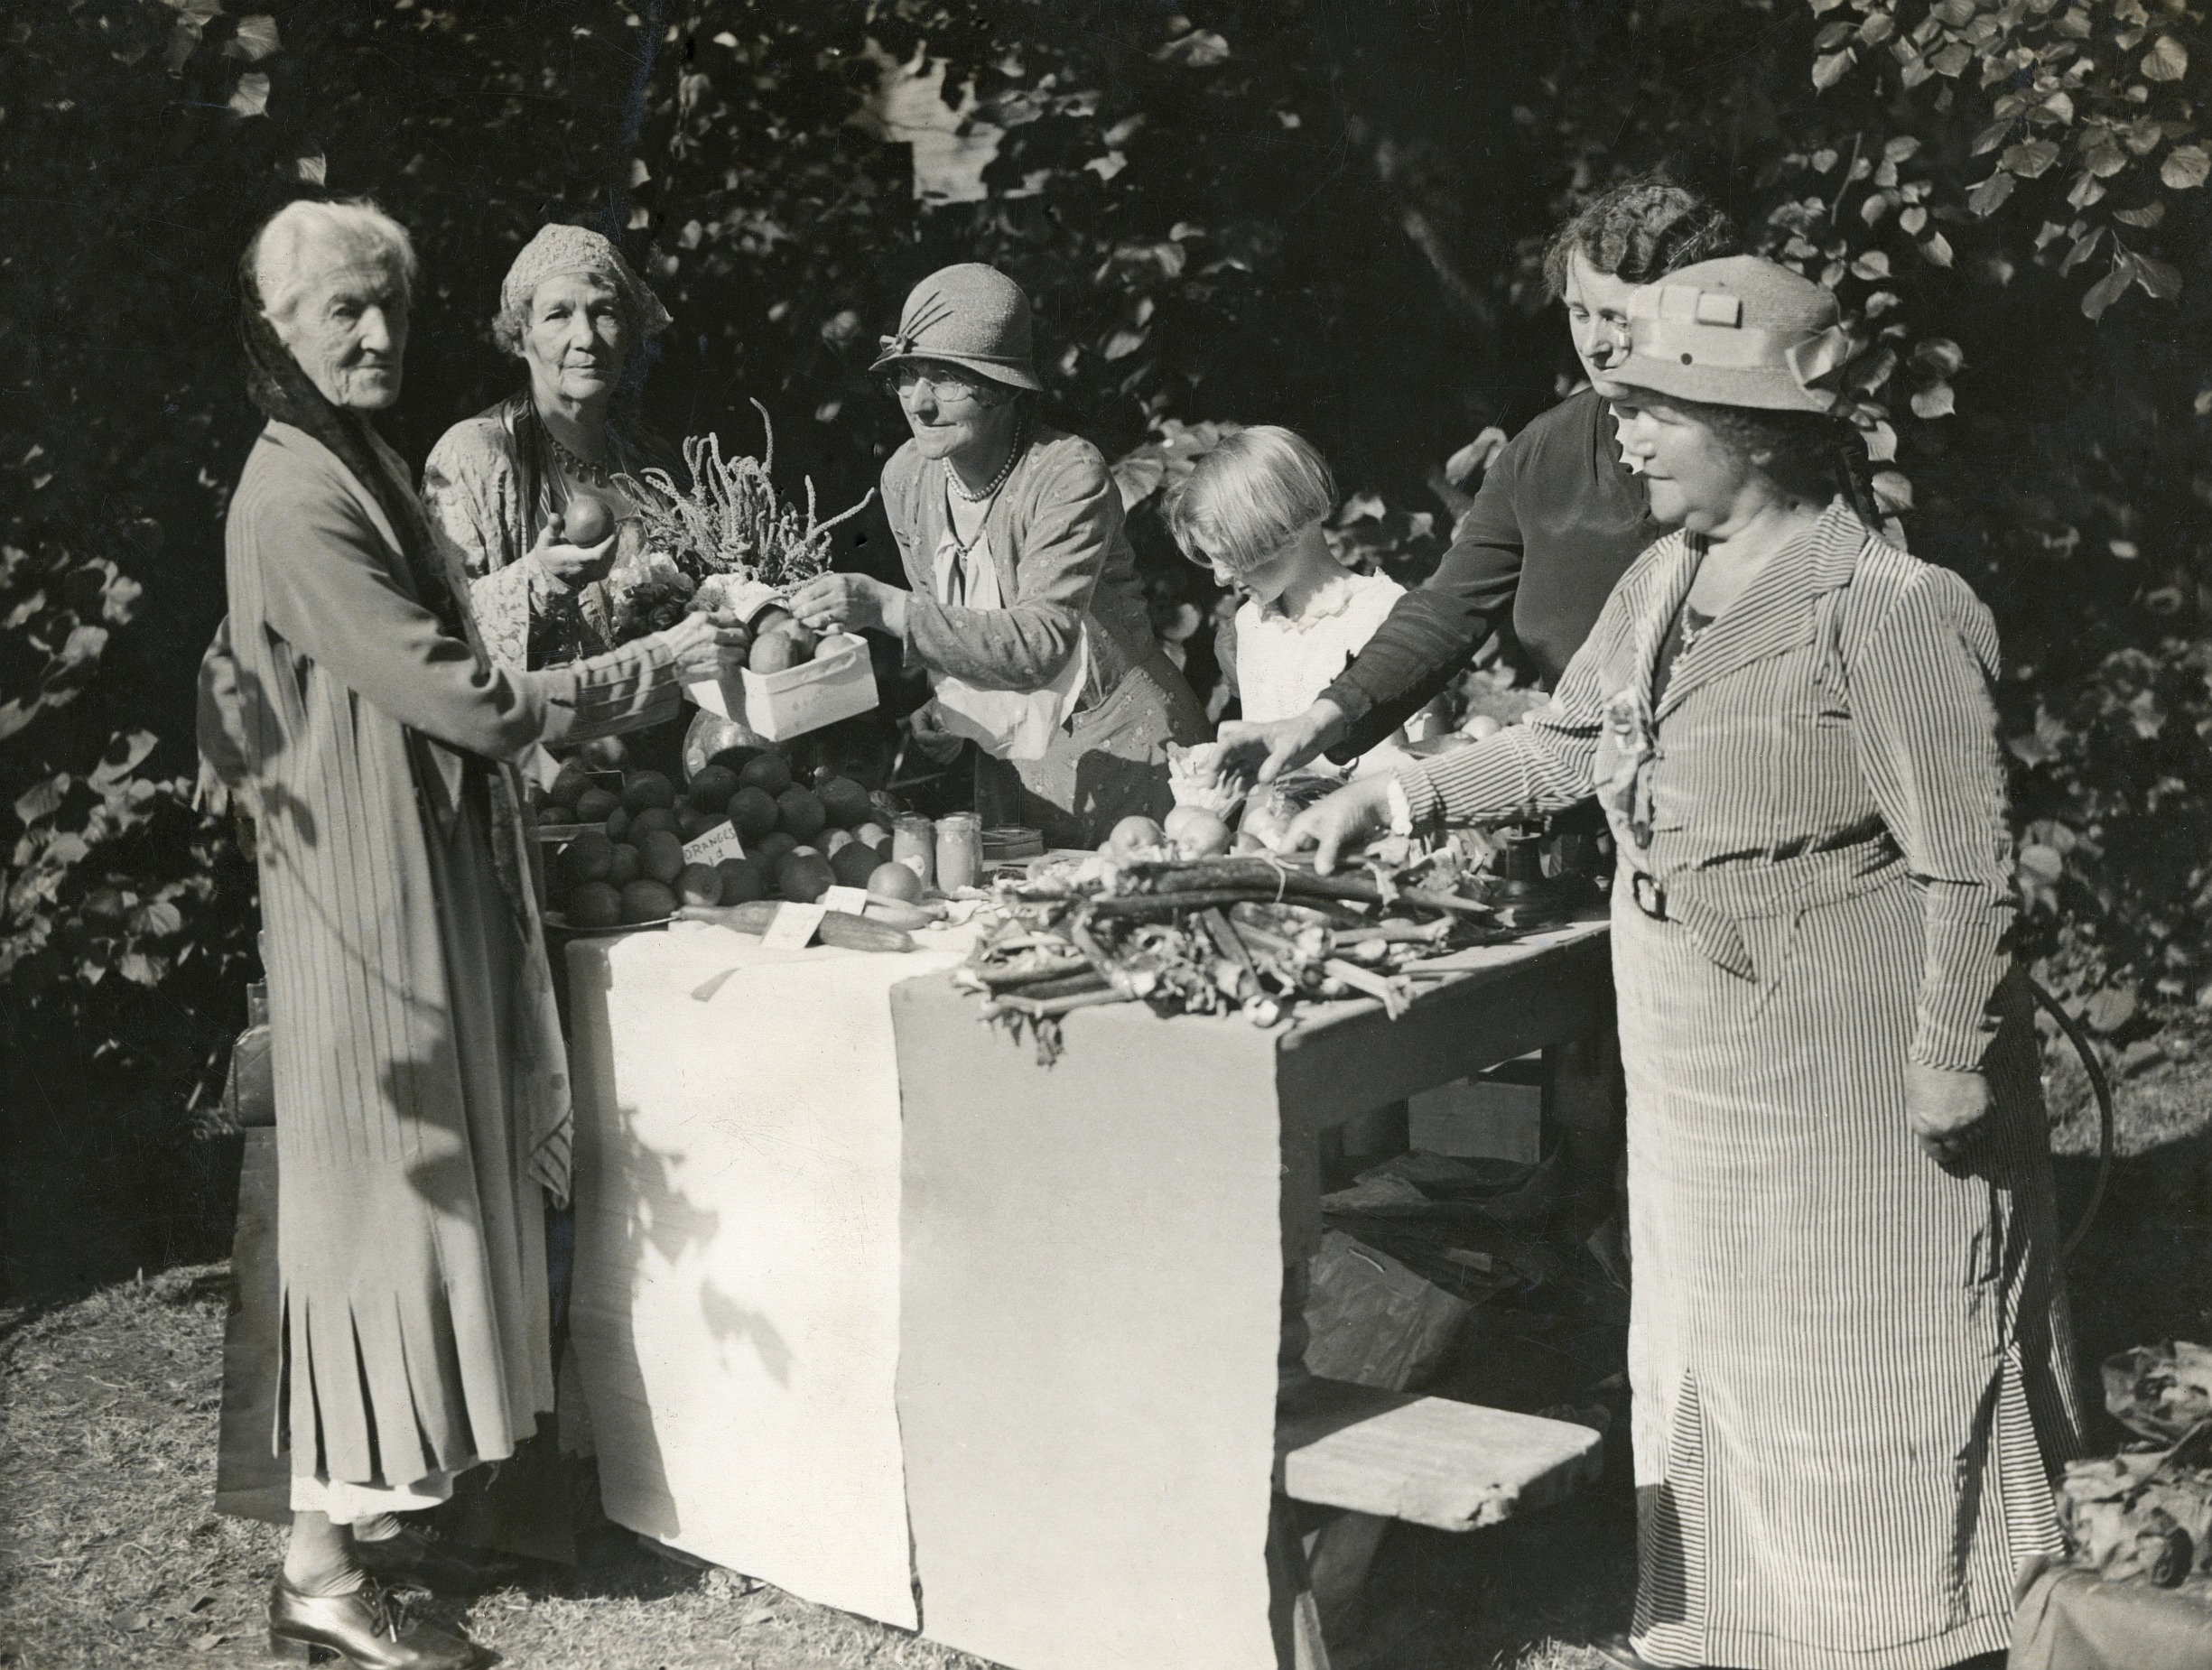 Charlotte Despard and Emmeline Pethick Lawrence buying vegetables from a produce stall; manuscript inscriptions on reverse 'Mrs Pethick Lawrence & Mrs Despard (1930s). Photo: The Women's Library collection/Library of the London School of Economics and Political Science. No known copyright restrictions.